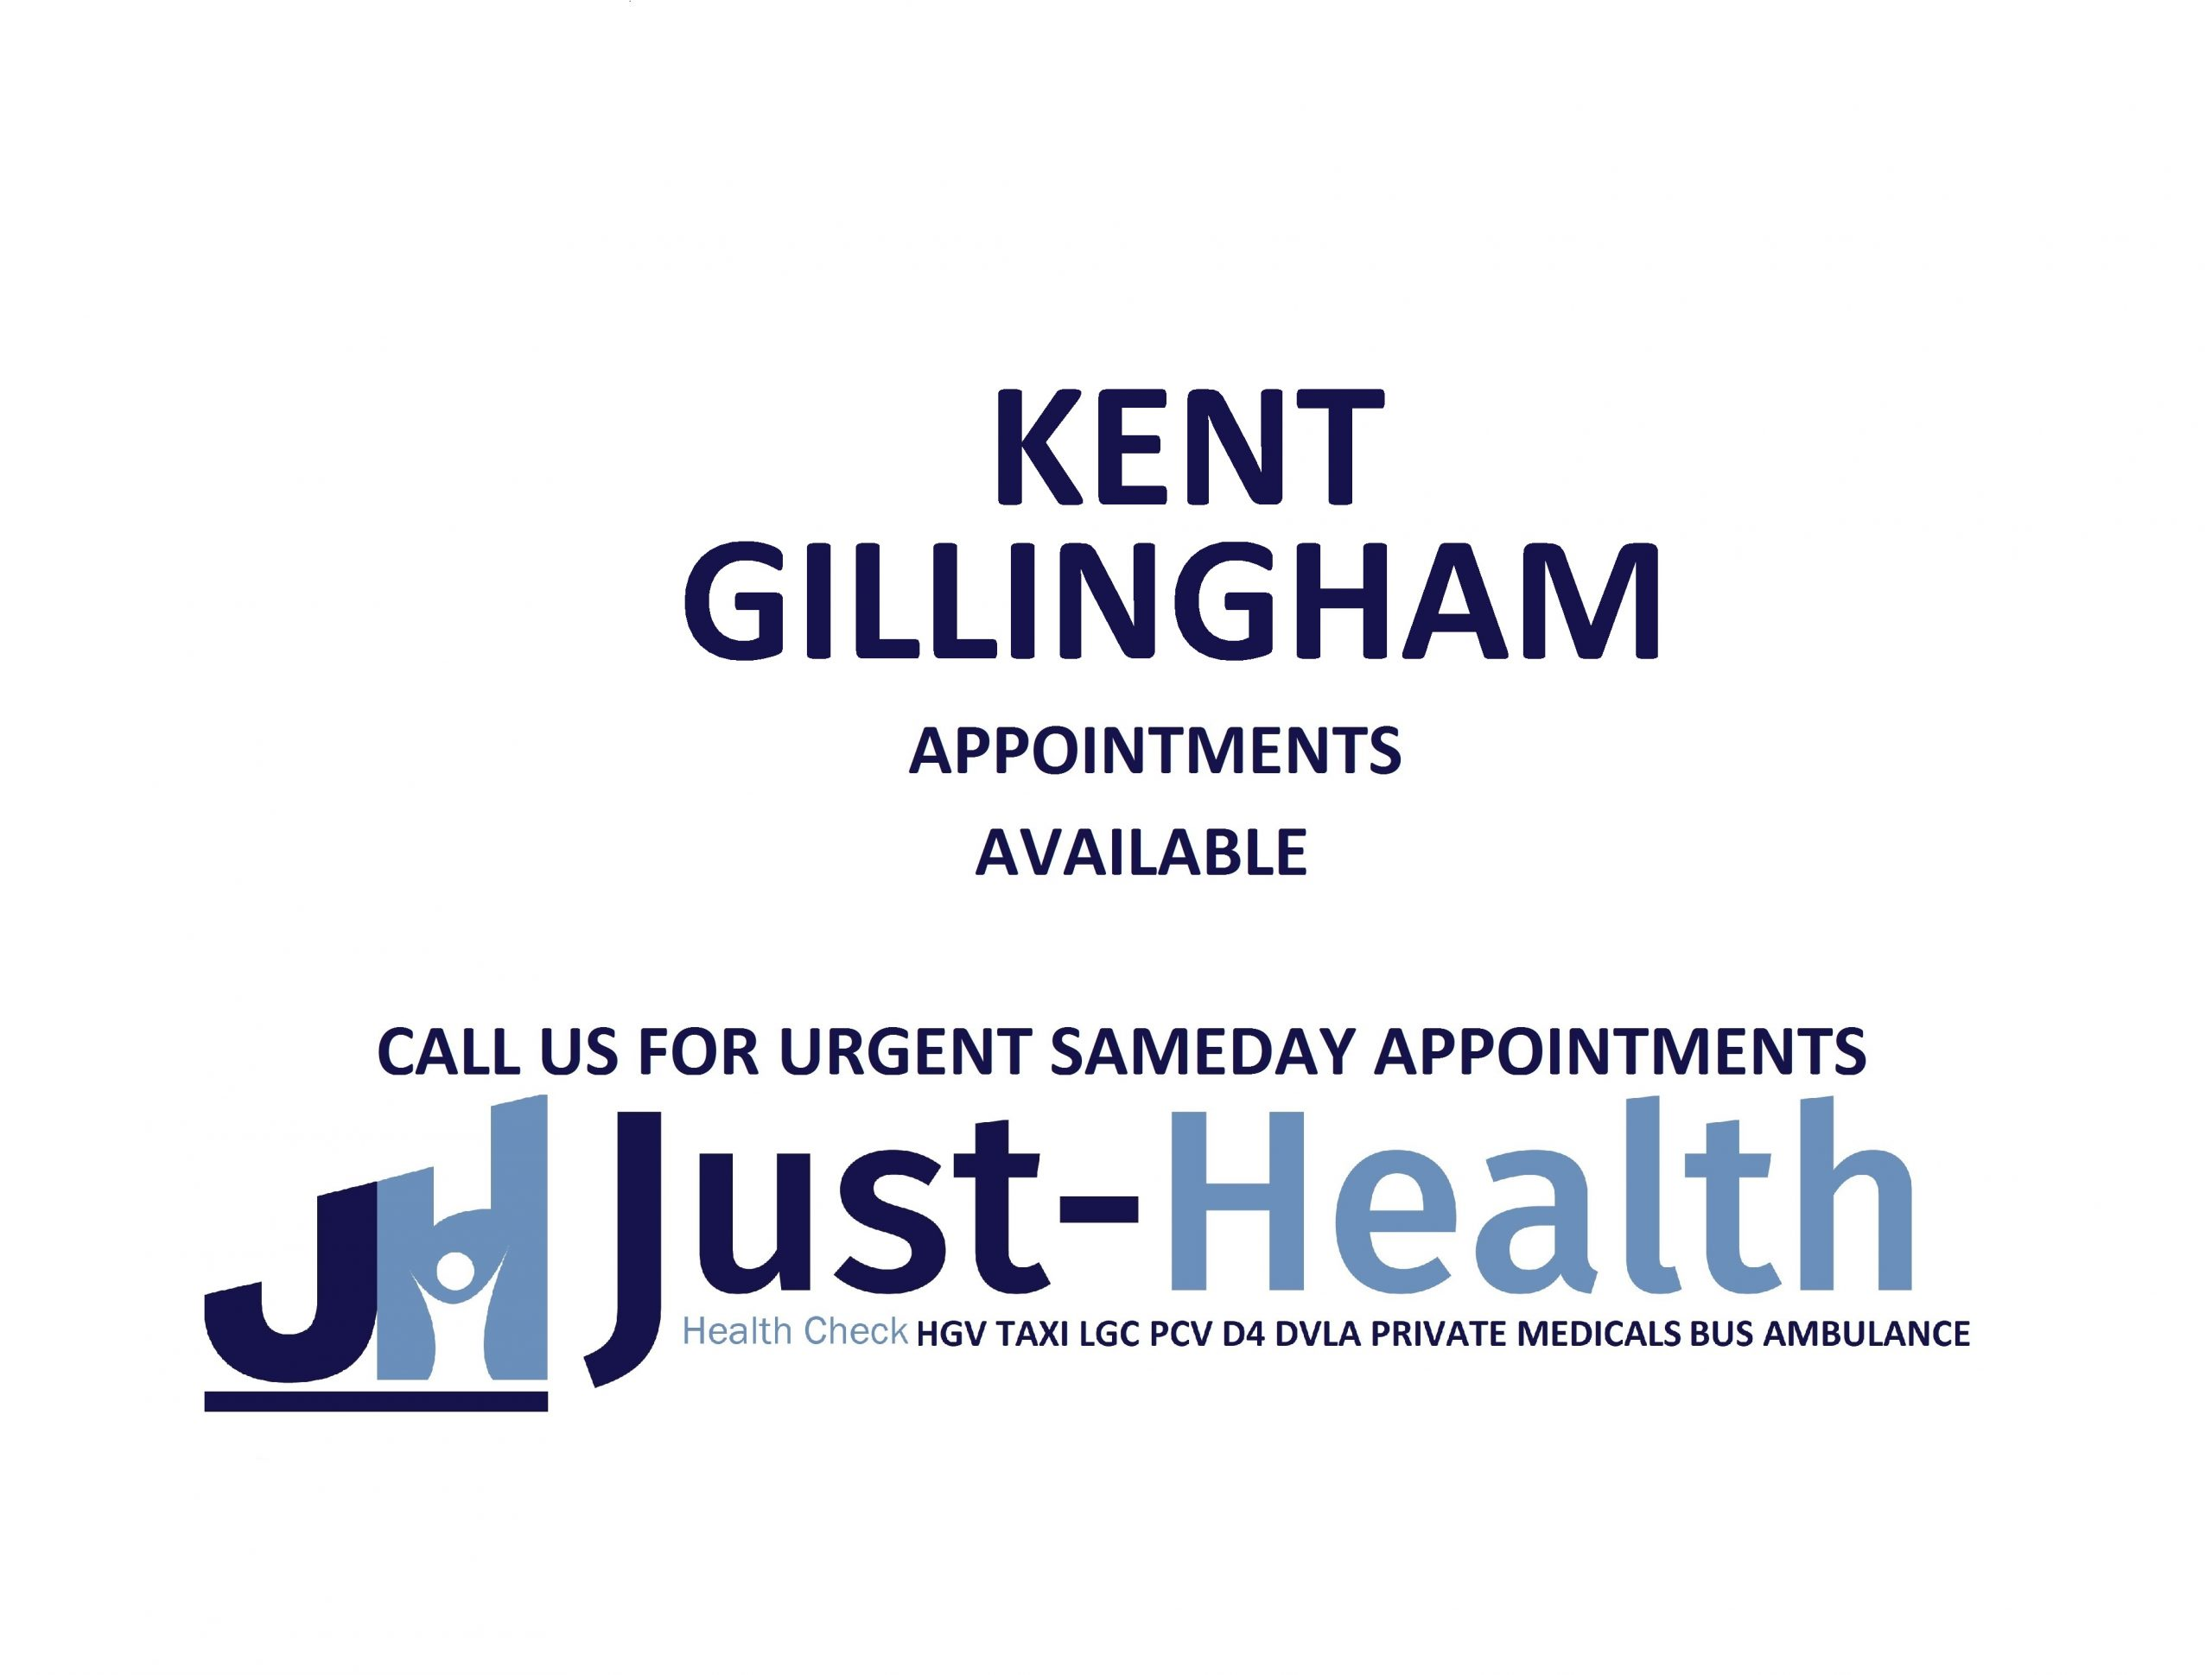 d4 PSV LGV Taxi Pcv HGV medical just health clinic kent gillingham london